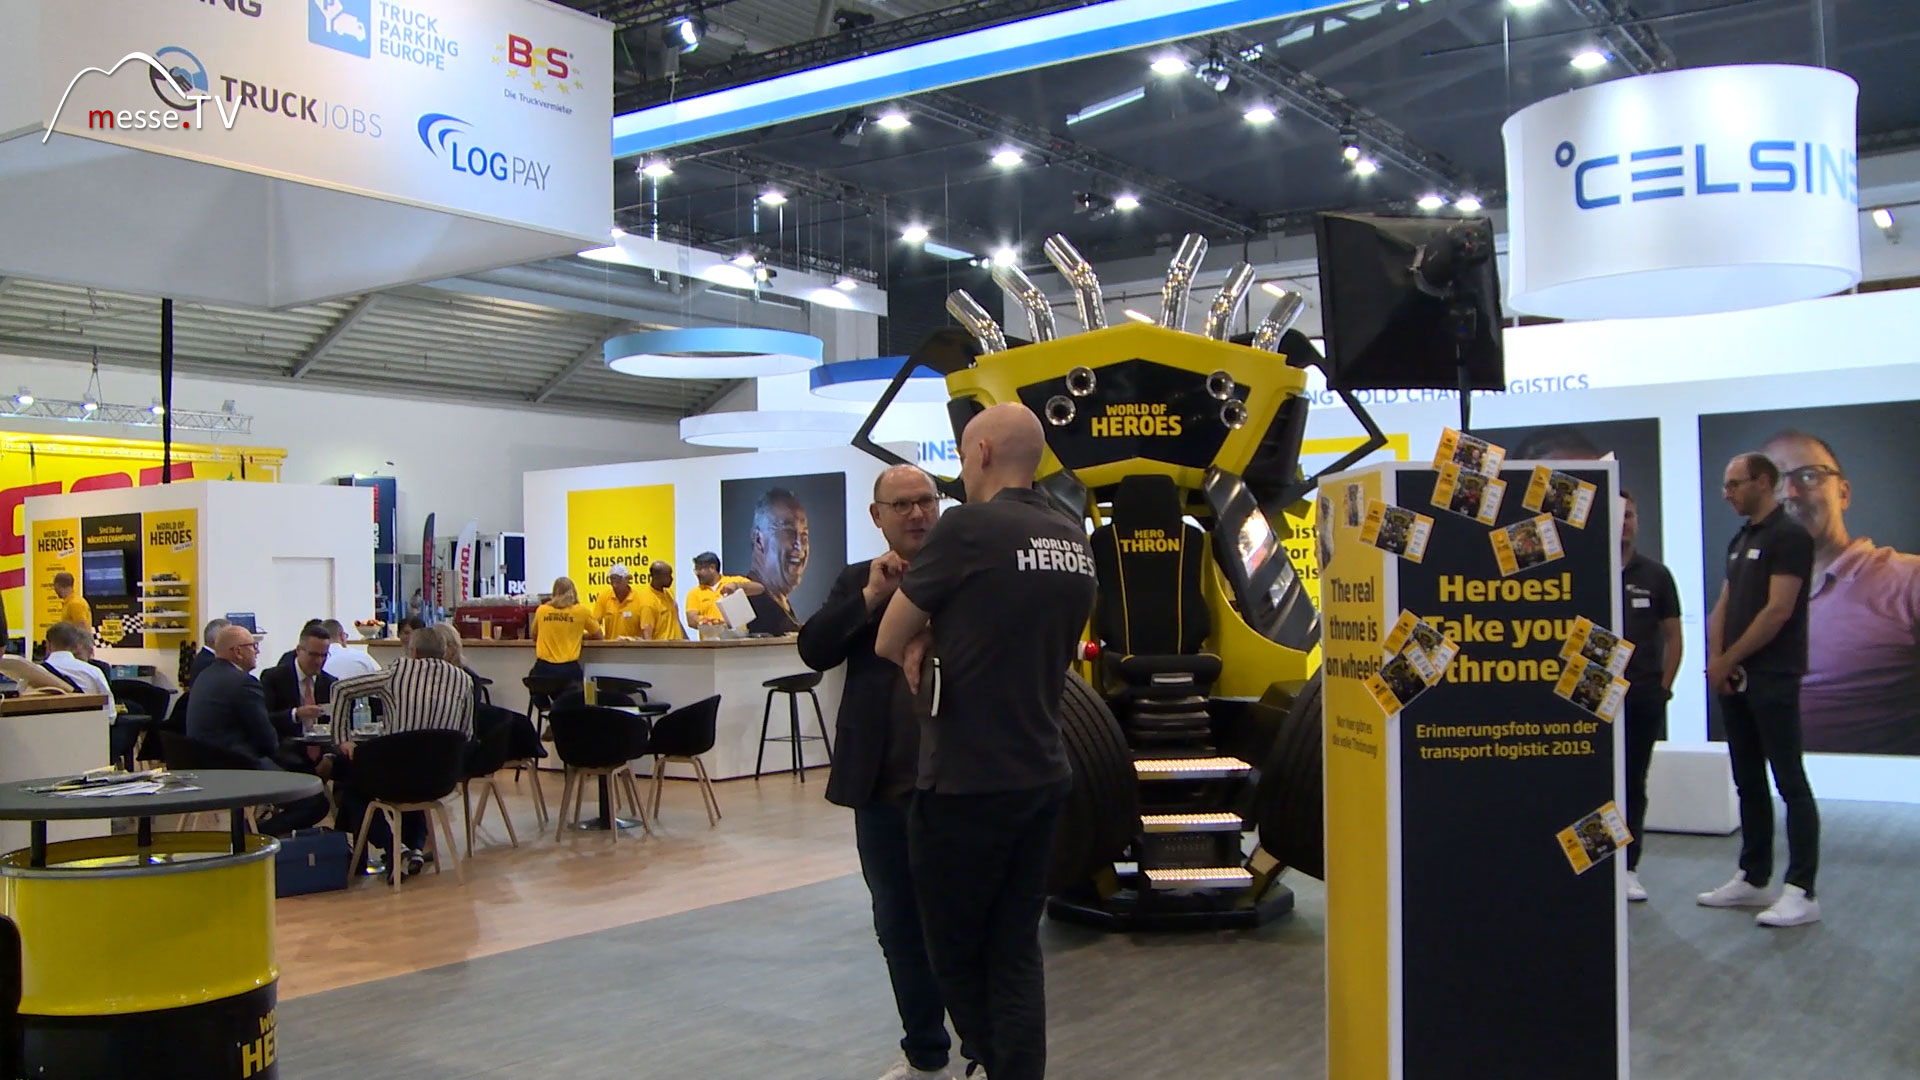 World of Heroes: Messestand transport logistic 2019 Messe München